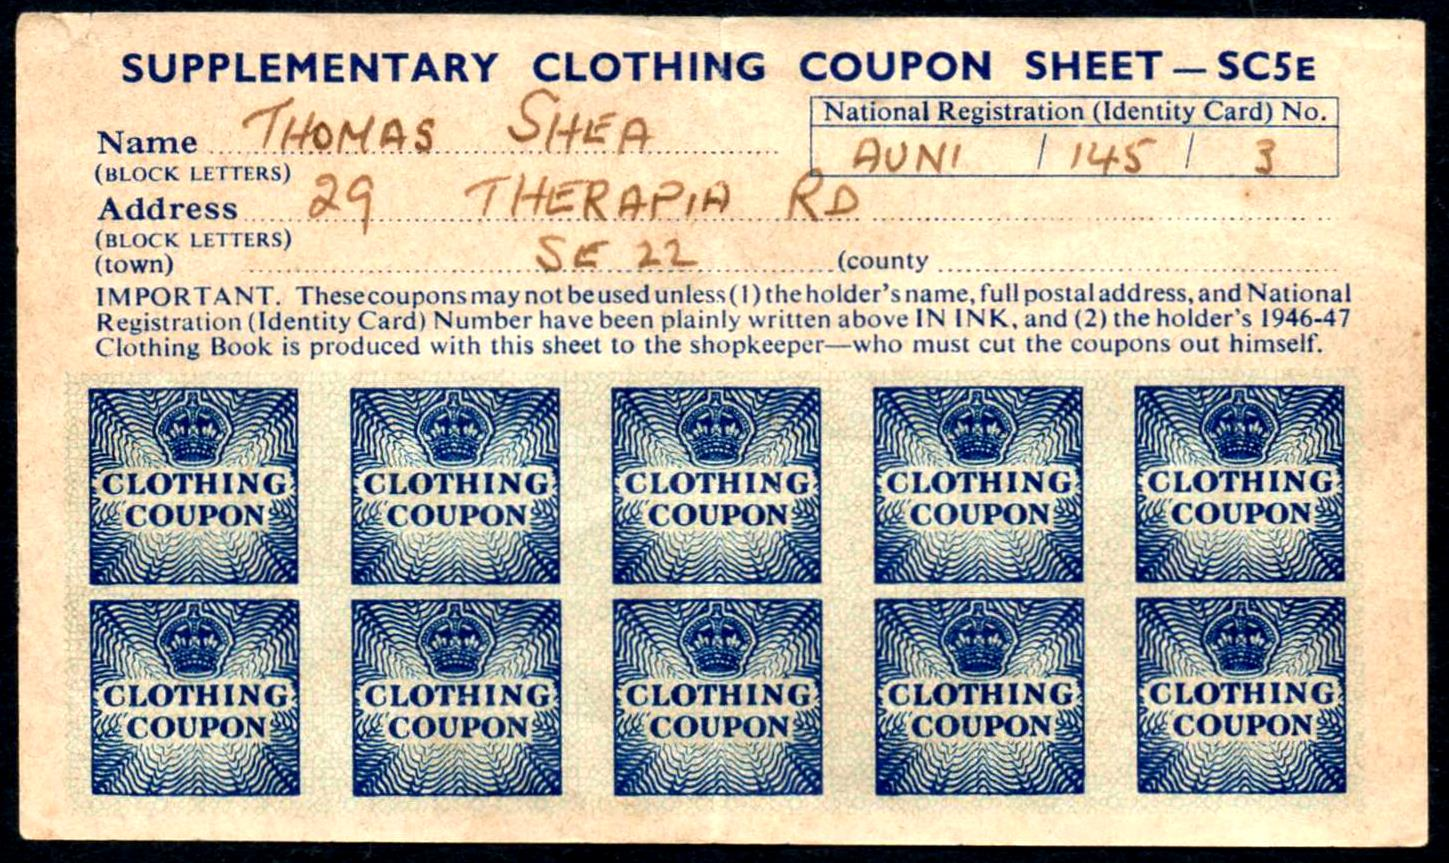 Coupons And Rationing During World War Ii